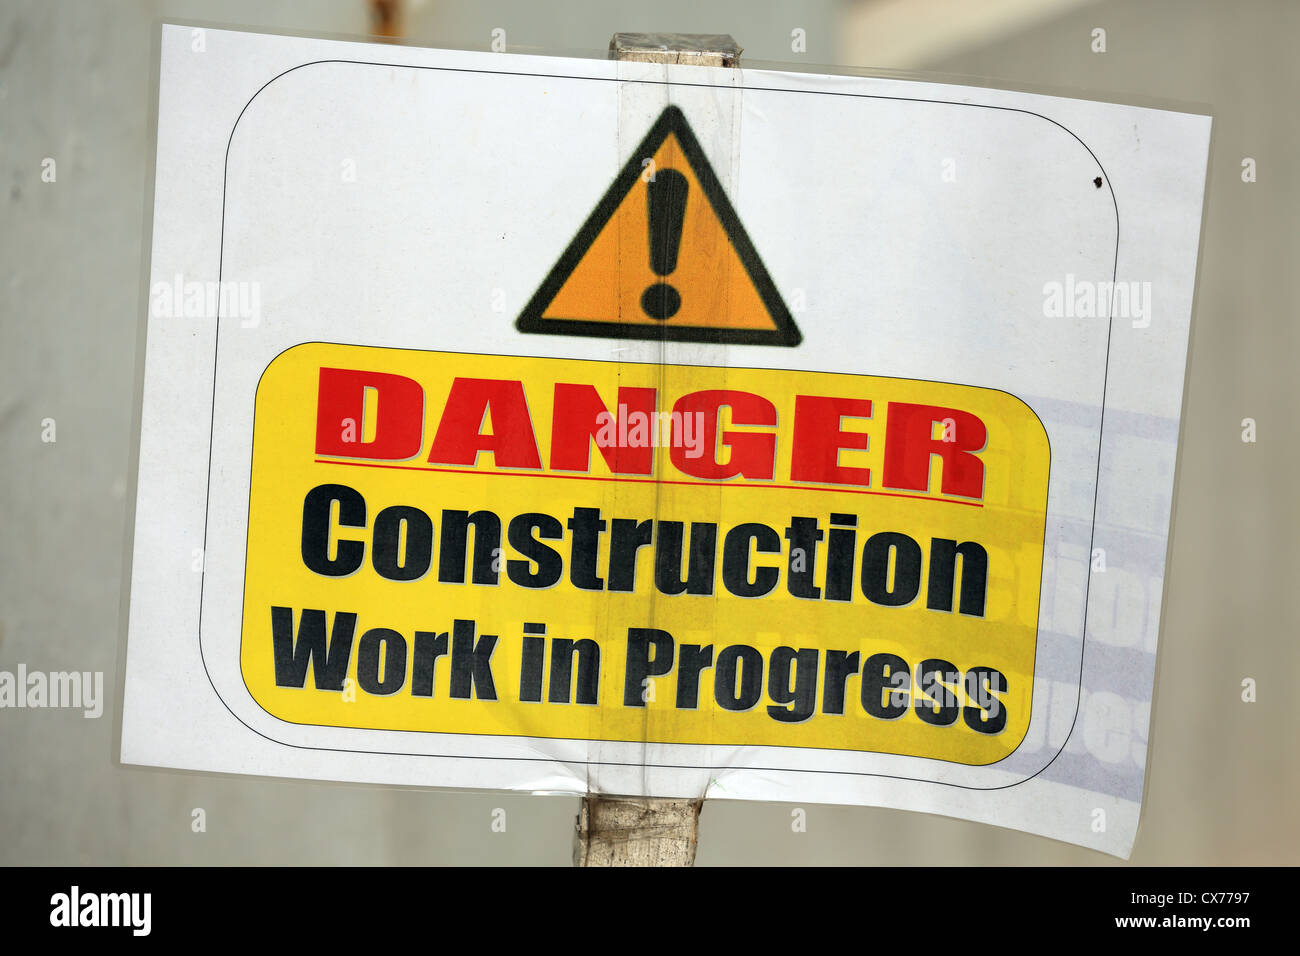 Danger construction work in progress sign - Stock Image